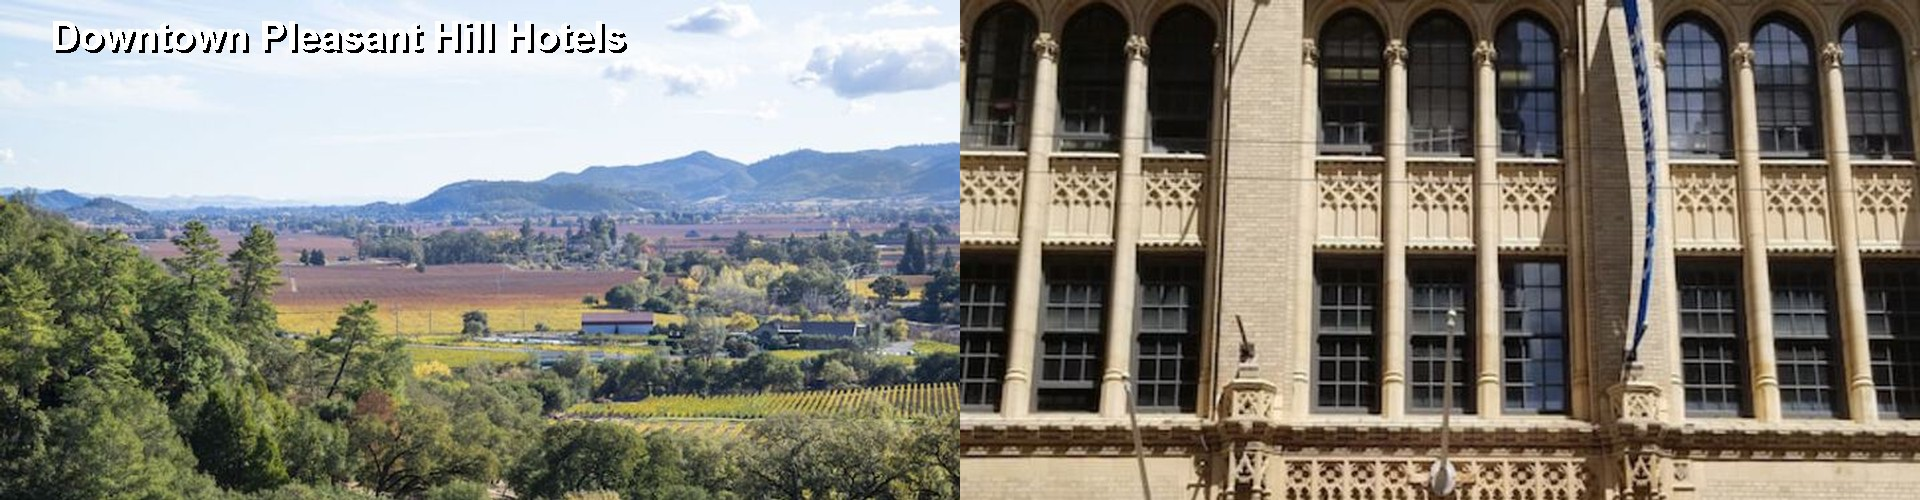 5 Best Hotels near Downtown Pleasant Hill